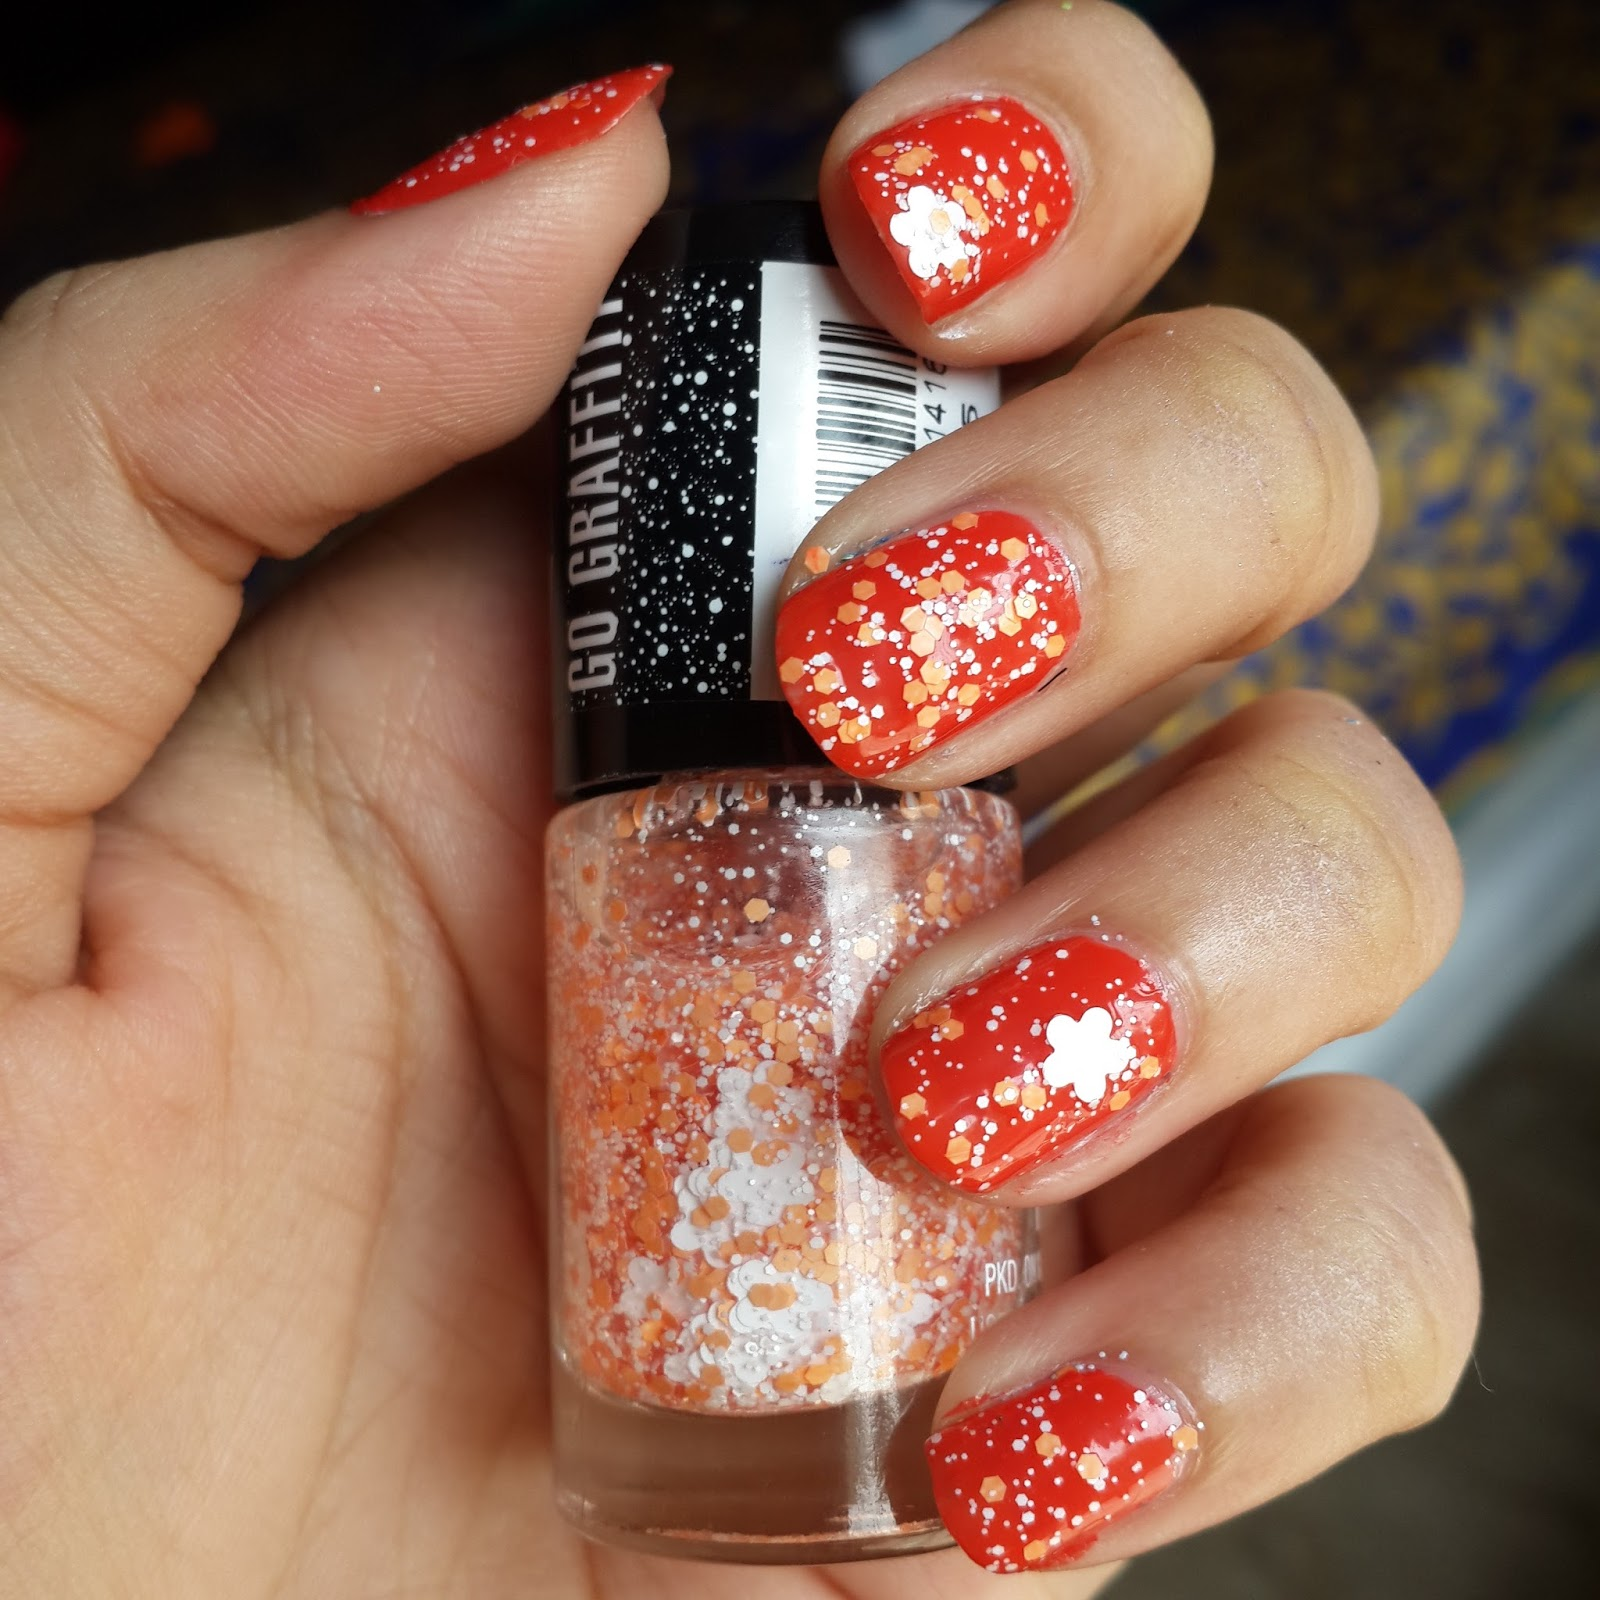 RIDZI MAKEUP: Maybelline Rebel Bouquet Collection Nail paints Review